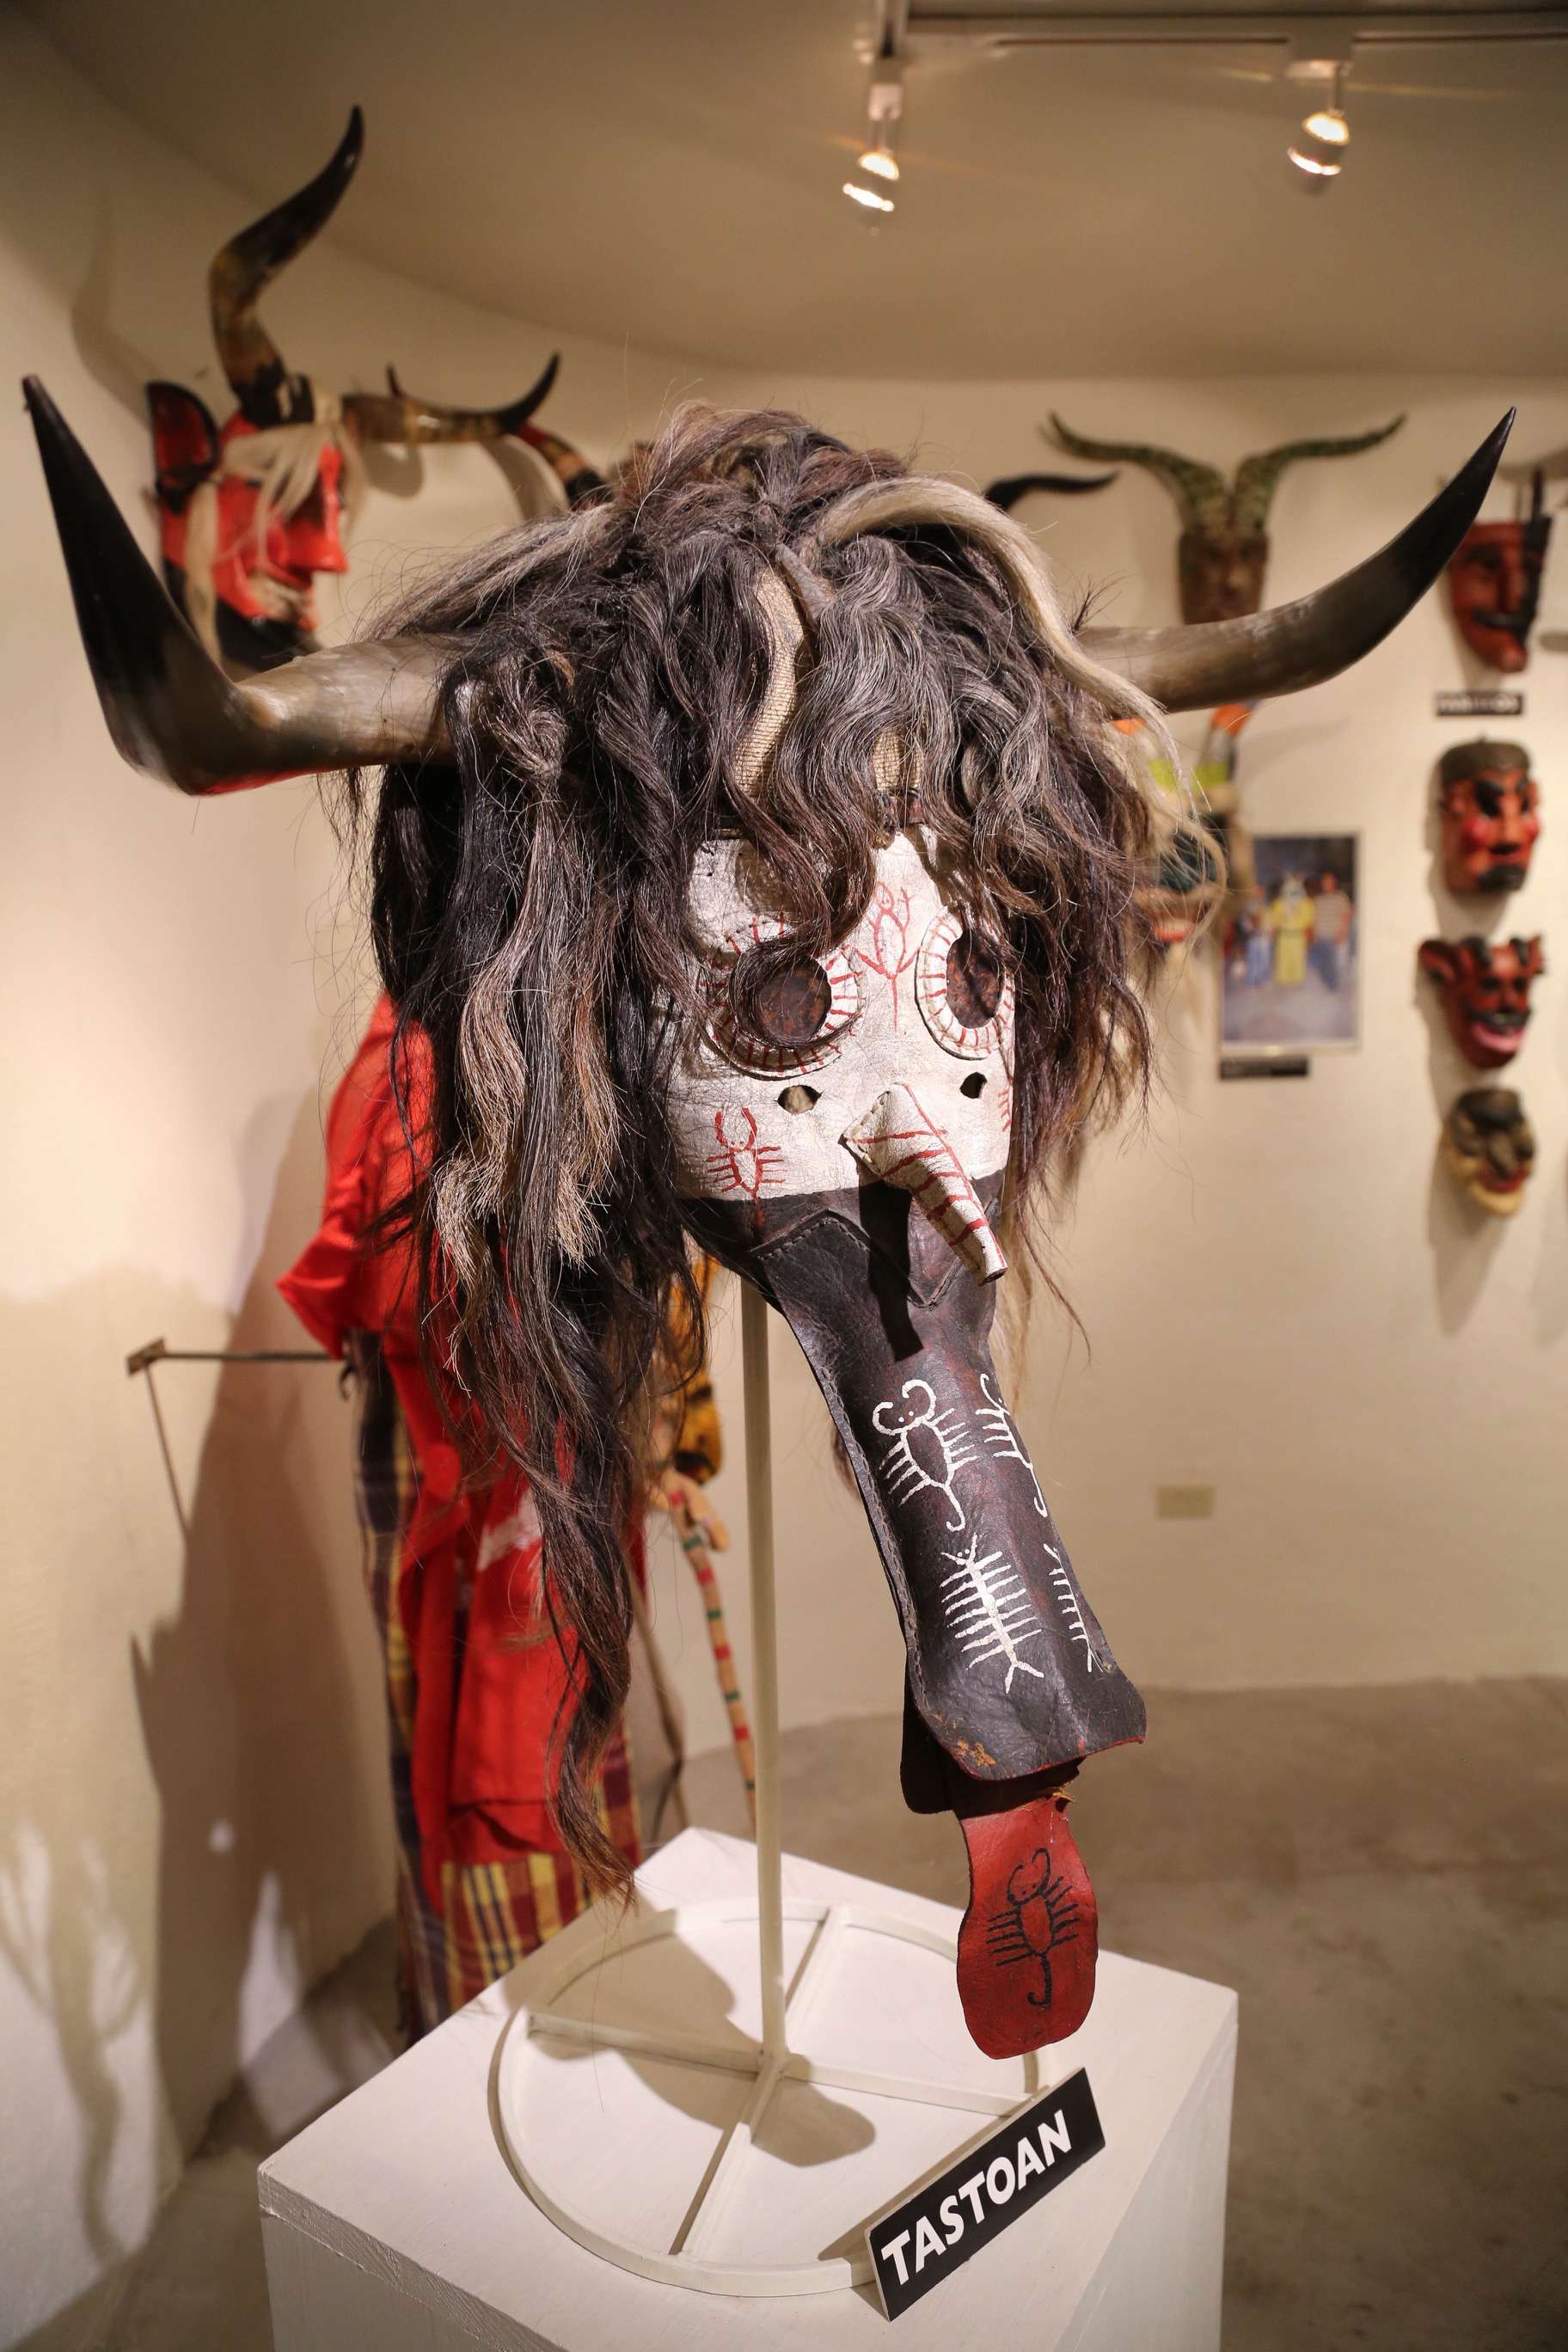 Each mask is distinctive and represents the talent of the maker and the feeling being conveyed.